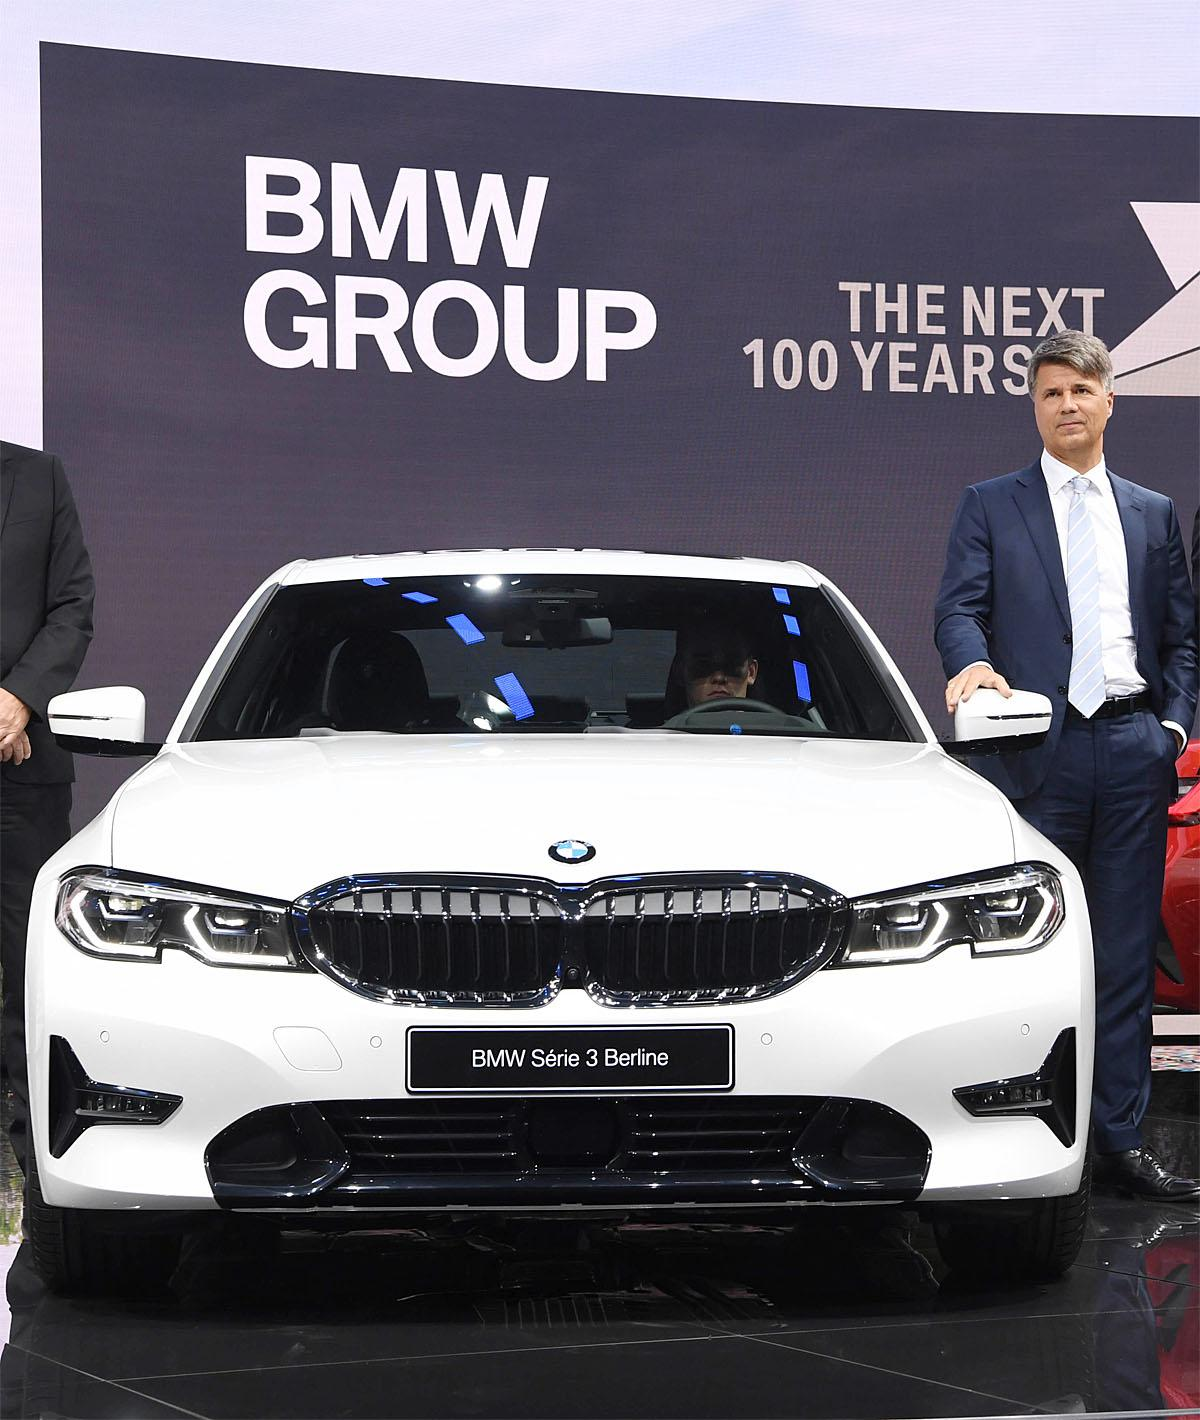 02 October 2018, France, Paris: Harald Krüger, CEO of BMW, presents the new BMW 3 Series on the 1st press day at the Paris International Motor Show. From 02.10. to 03.10.2018 the press days will take place at the Paris Motor Show. It will then be open to the public from 04.10. to 14. October. Photo: Uli Deck/dpaWhere: Paris, Île-de-France, FranceWhen: 02 Oct 2018Credit: Uli Deck/picture-alliance/Cover Images